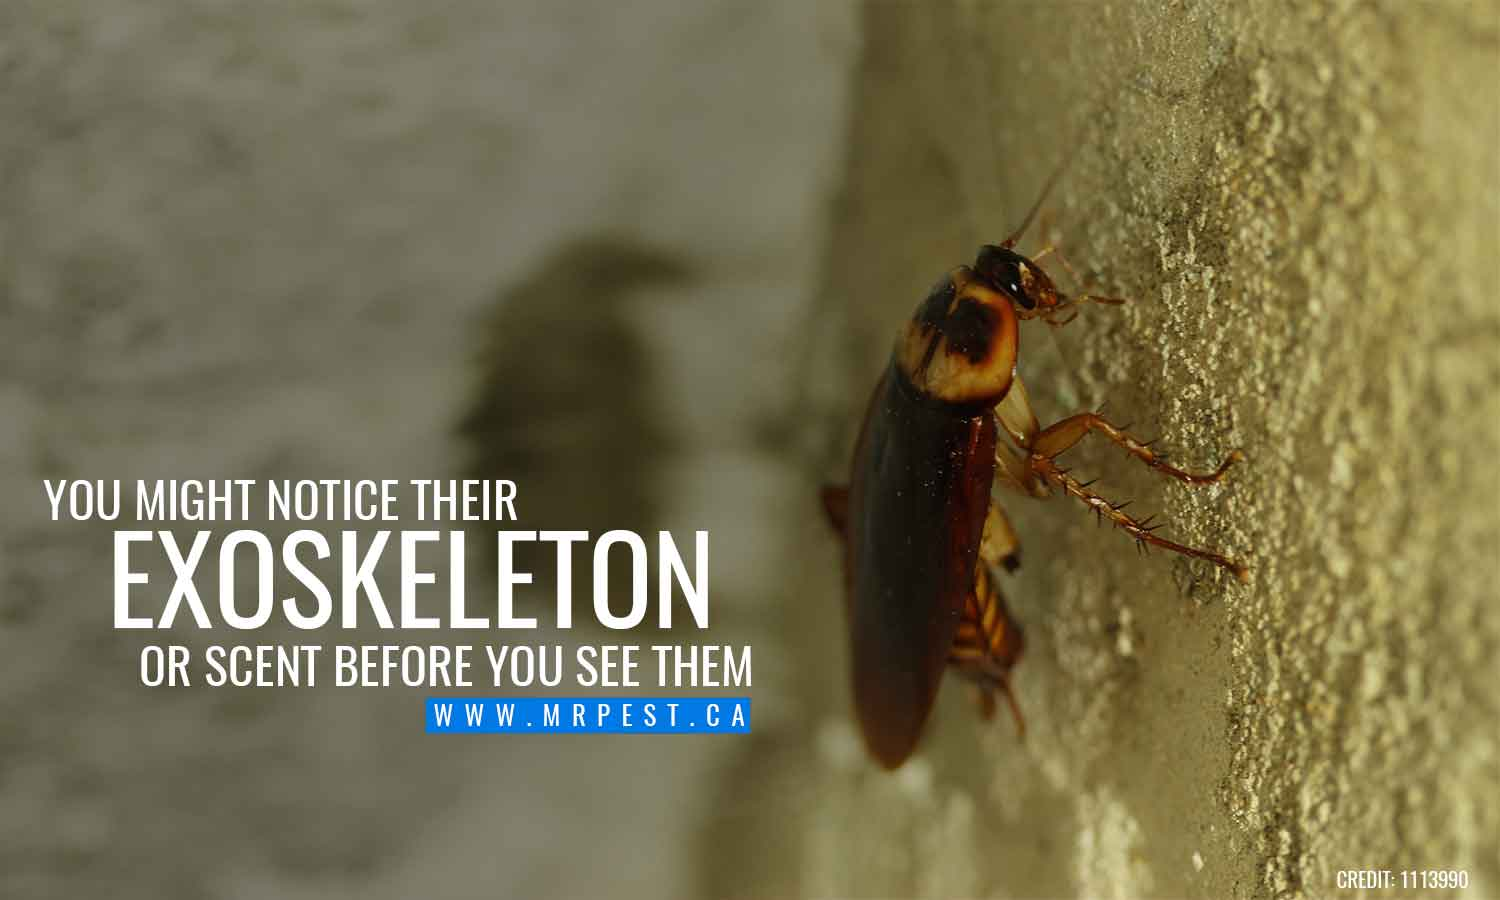 You might notice their exoskeleton or scent before you see them